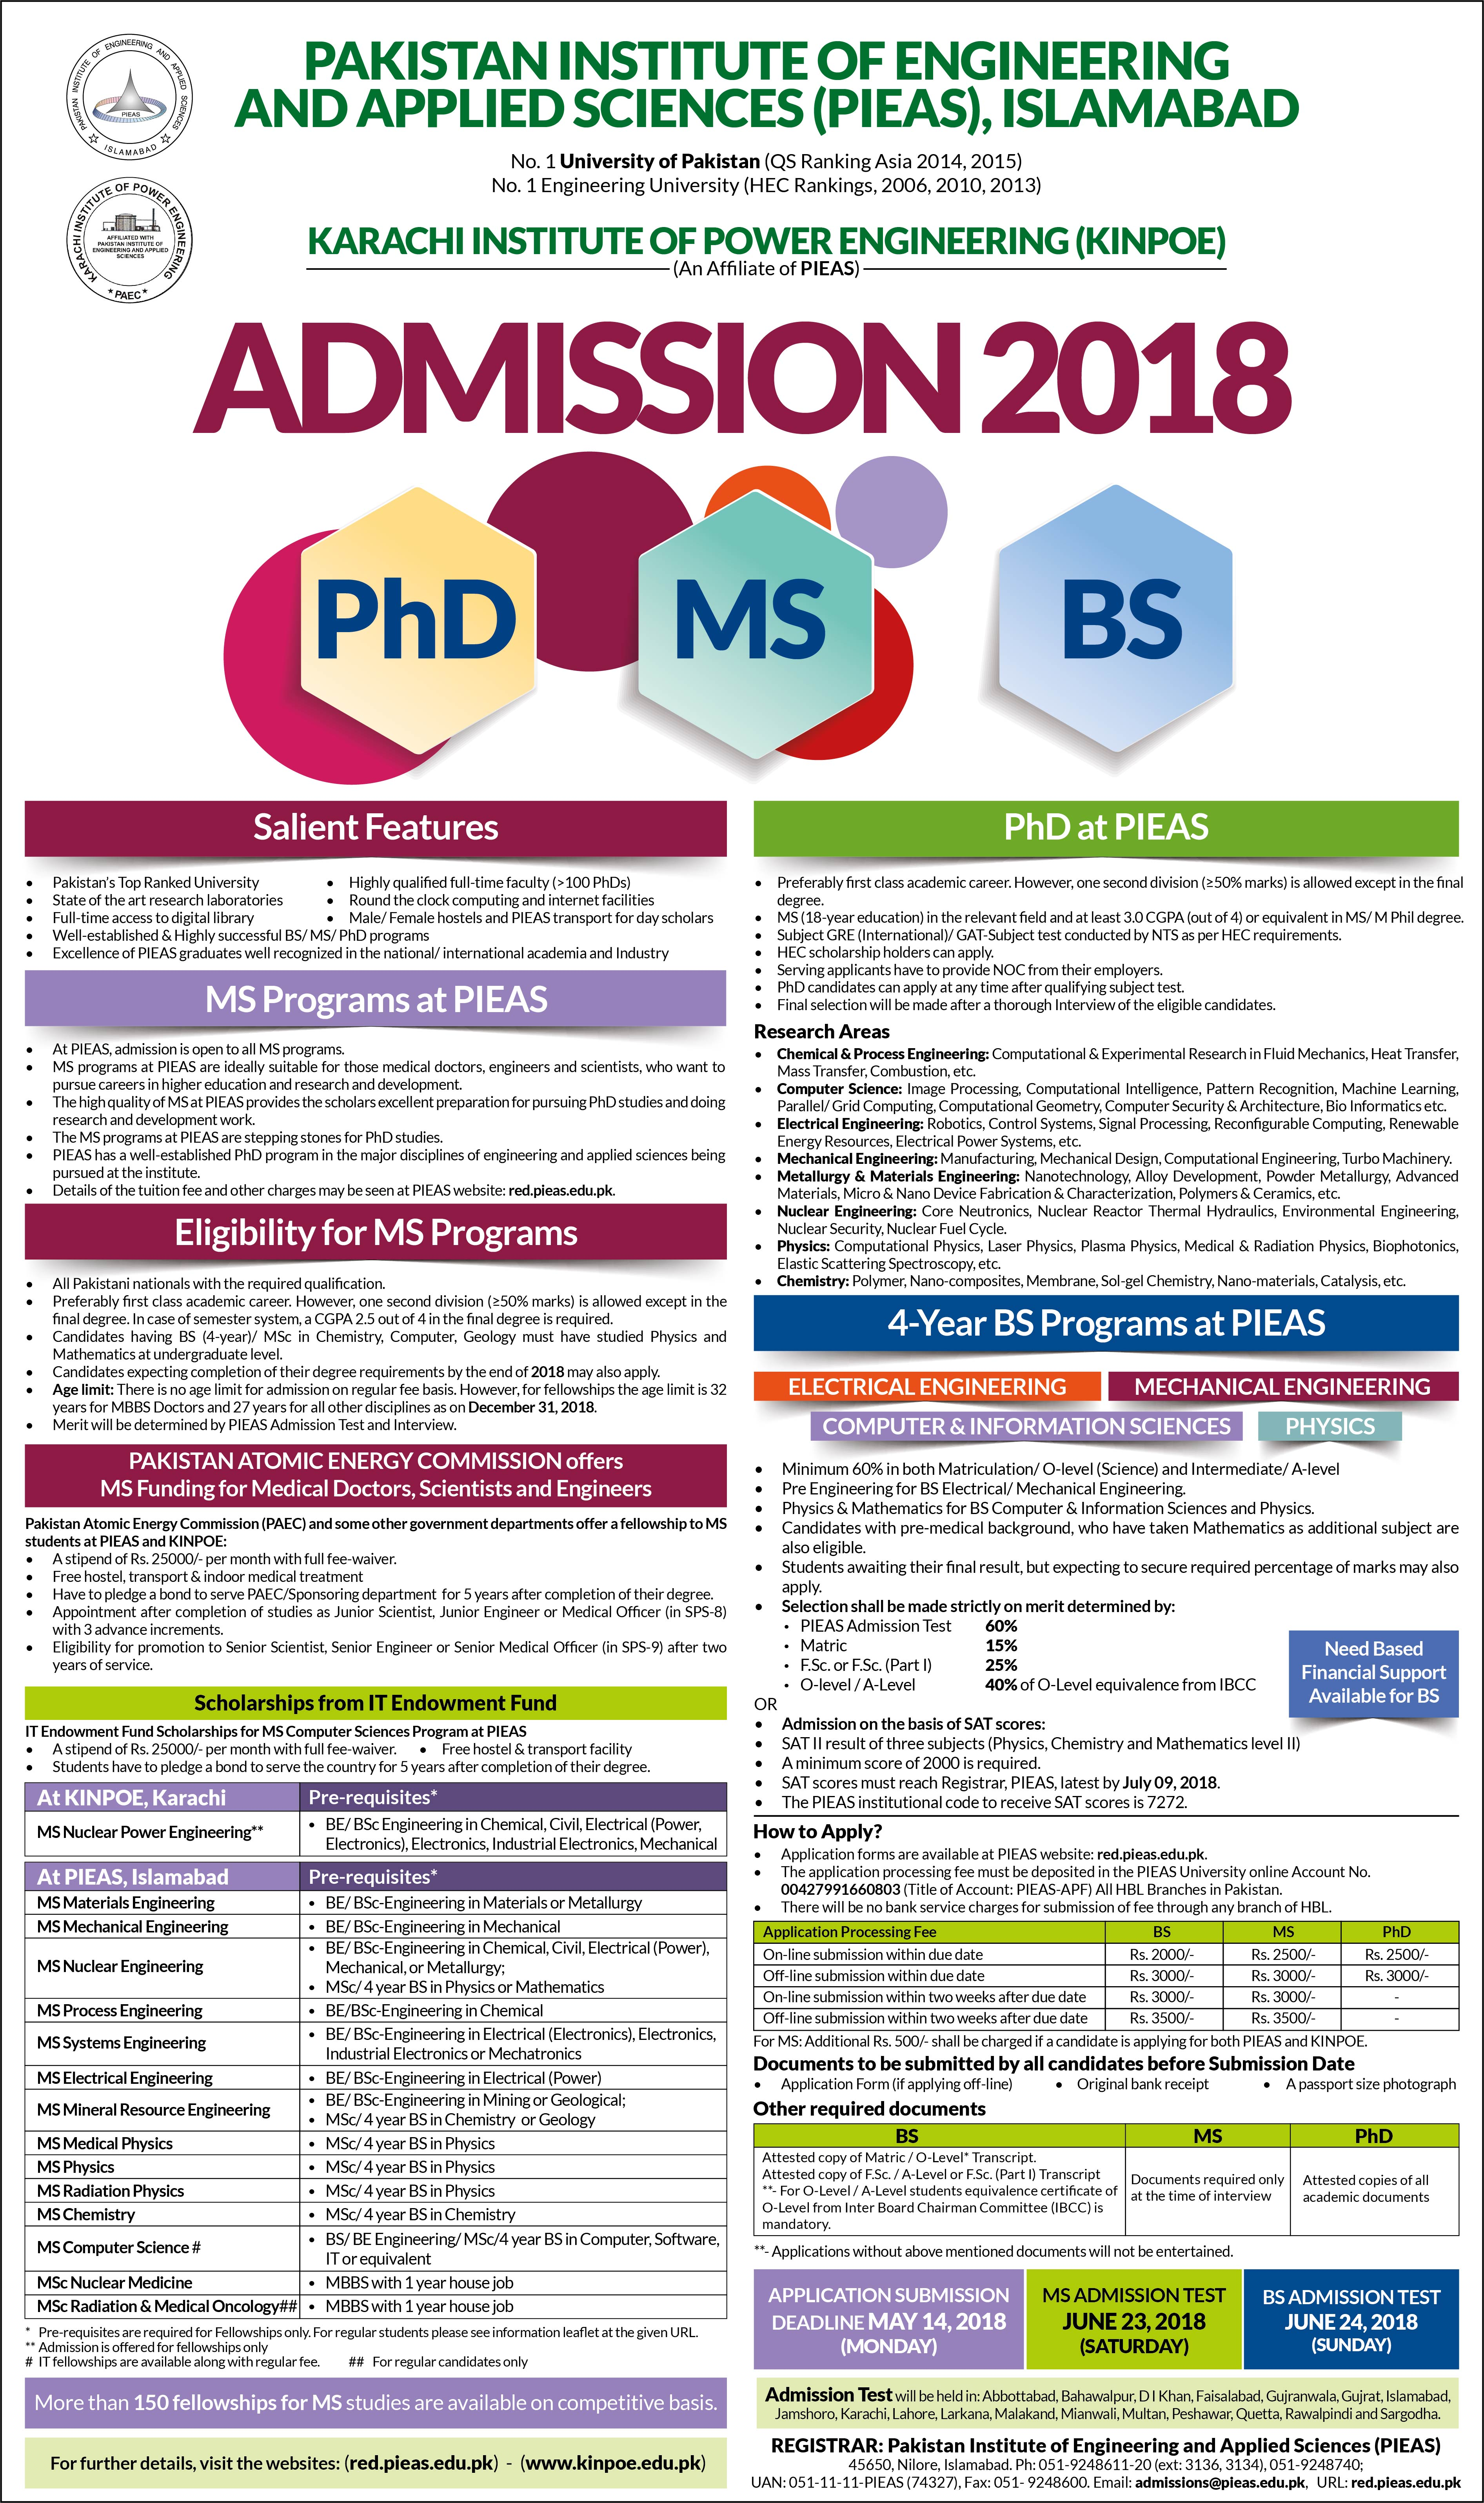 Pakistan Institute of Engineering and Applied Sciences (PIEAS), Islamabad – Admissions 2018